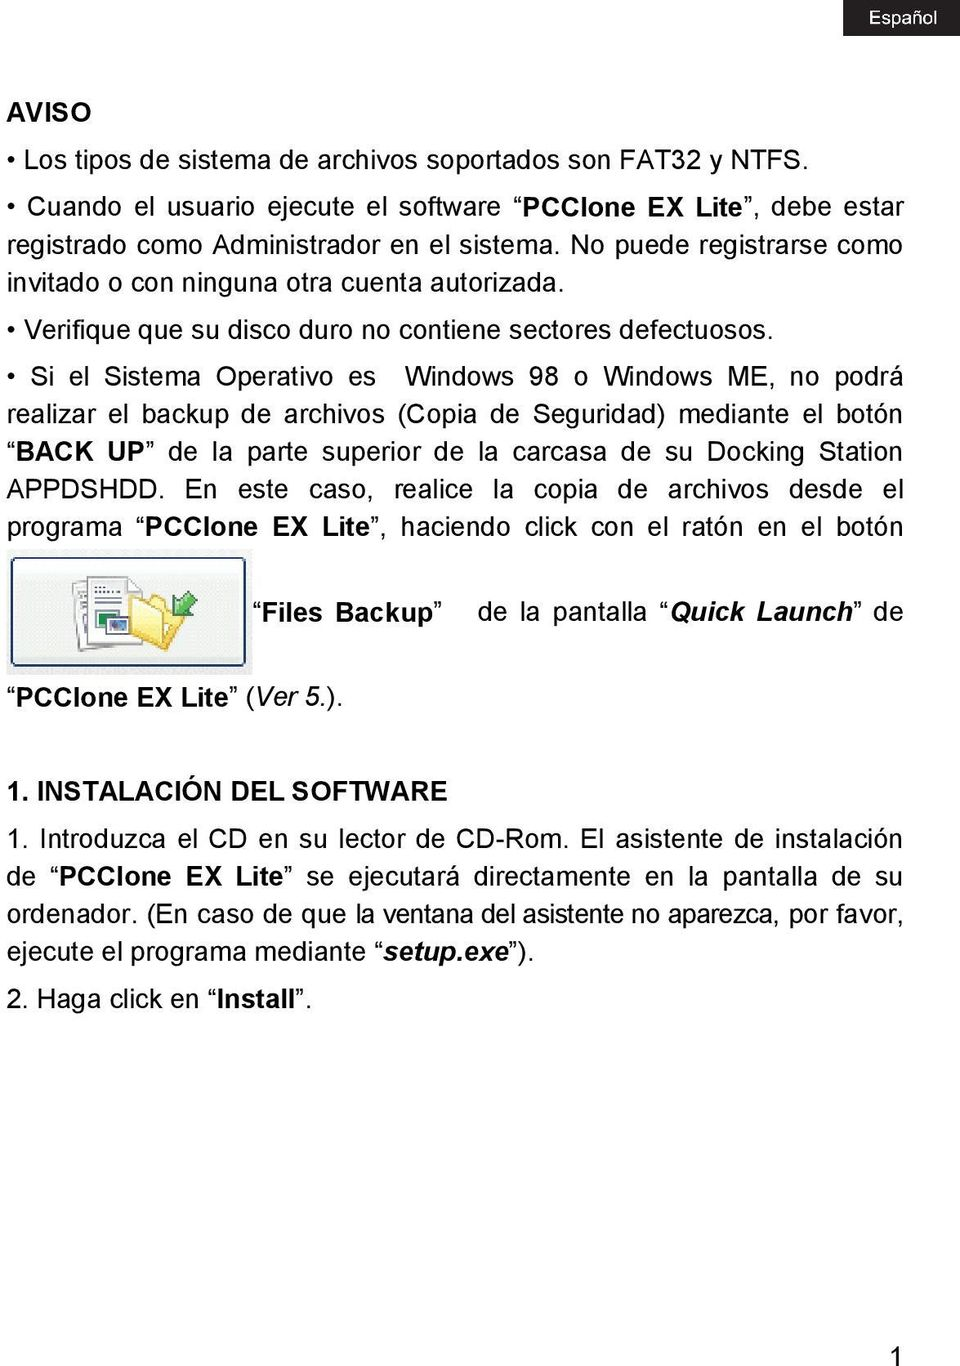 Si el Sistema Operativo es Windows 98 o Windows ME, no podrá realizar el backup de archivos (Copia de Seguridad) mediante el botón BACK UP de la parte superior de la carcasa de su Docking Station